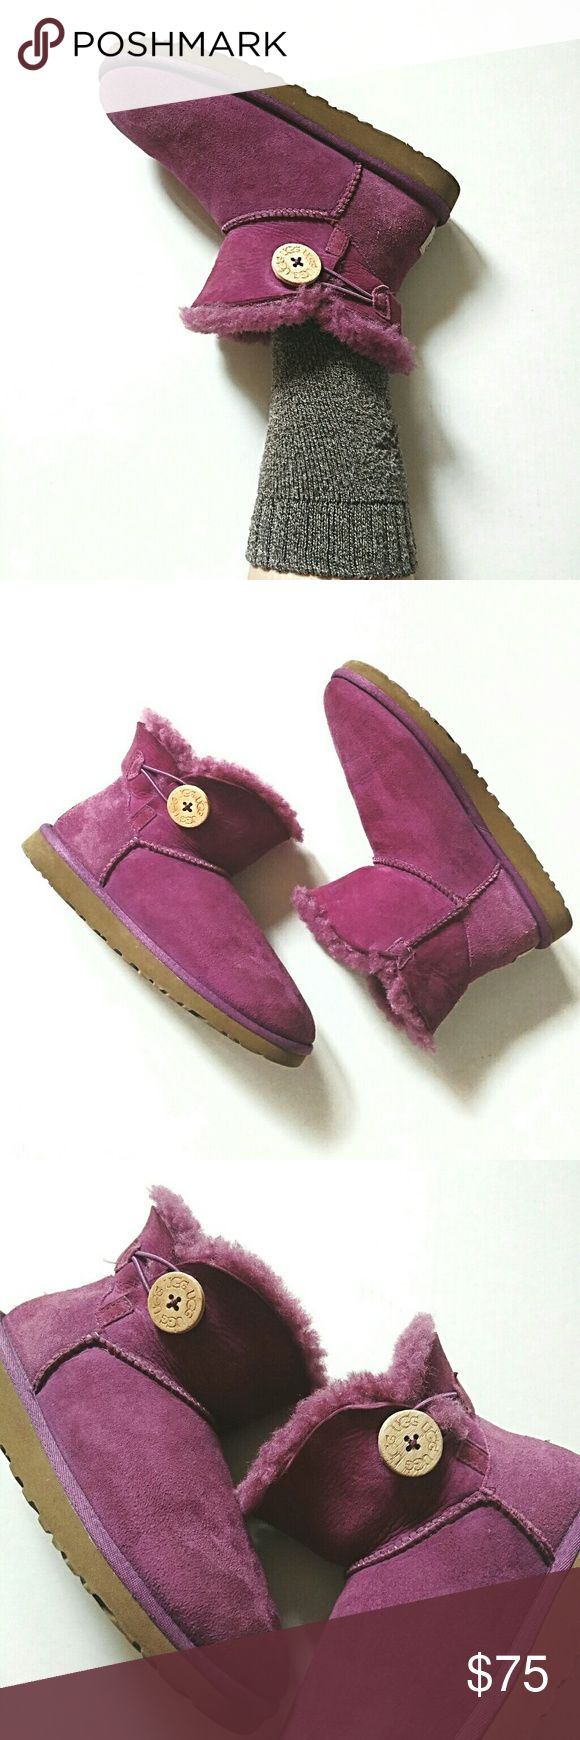 UGG Mini Bailey Button Purple Boots Ankle Booties Adorable!  Unique purple / pink color.  Size 6.  No salt marks or water stains. They are overall in nice and clean condition. Plenty of tread left on the soles and life left in them! UGG Shoes Ankle Boots & Booties